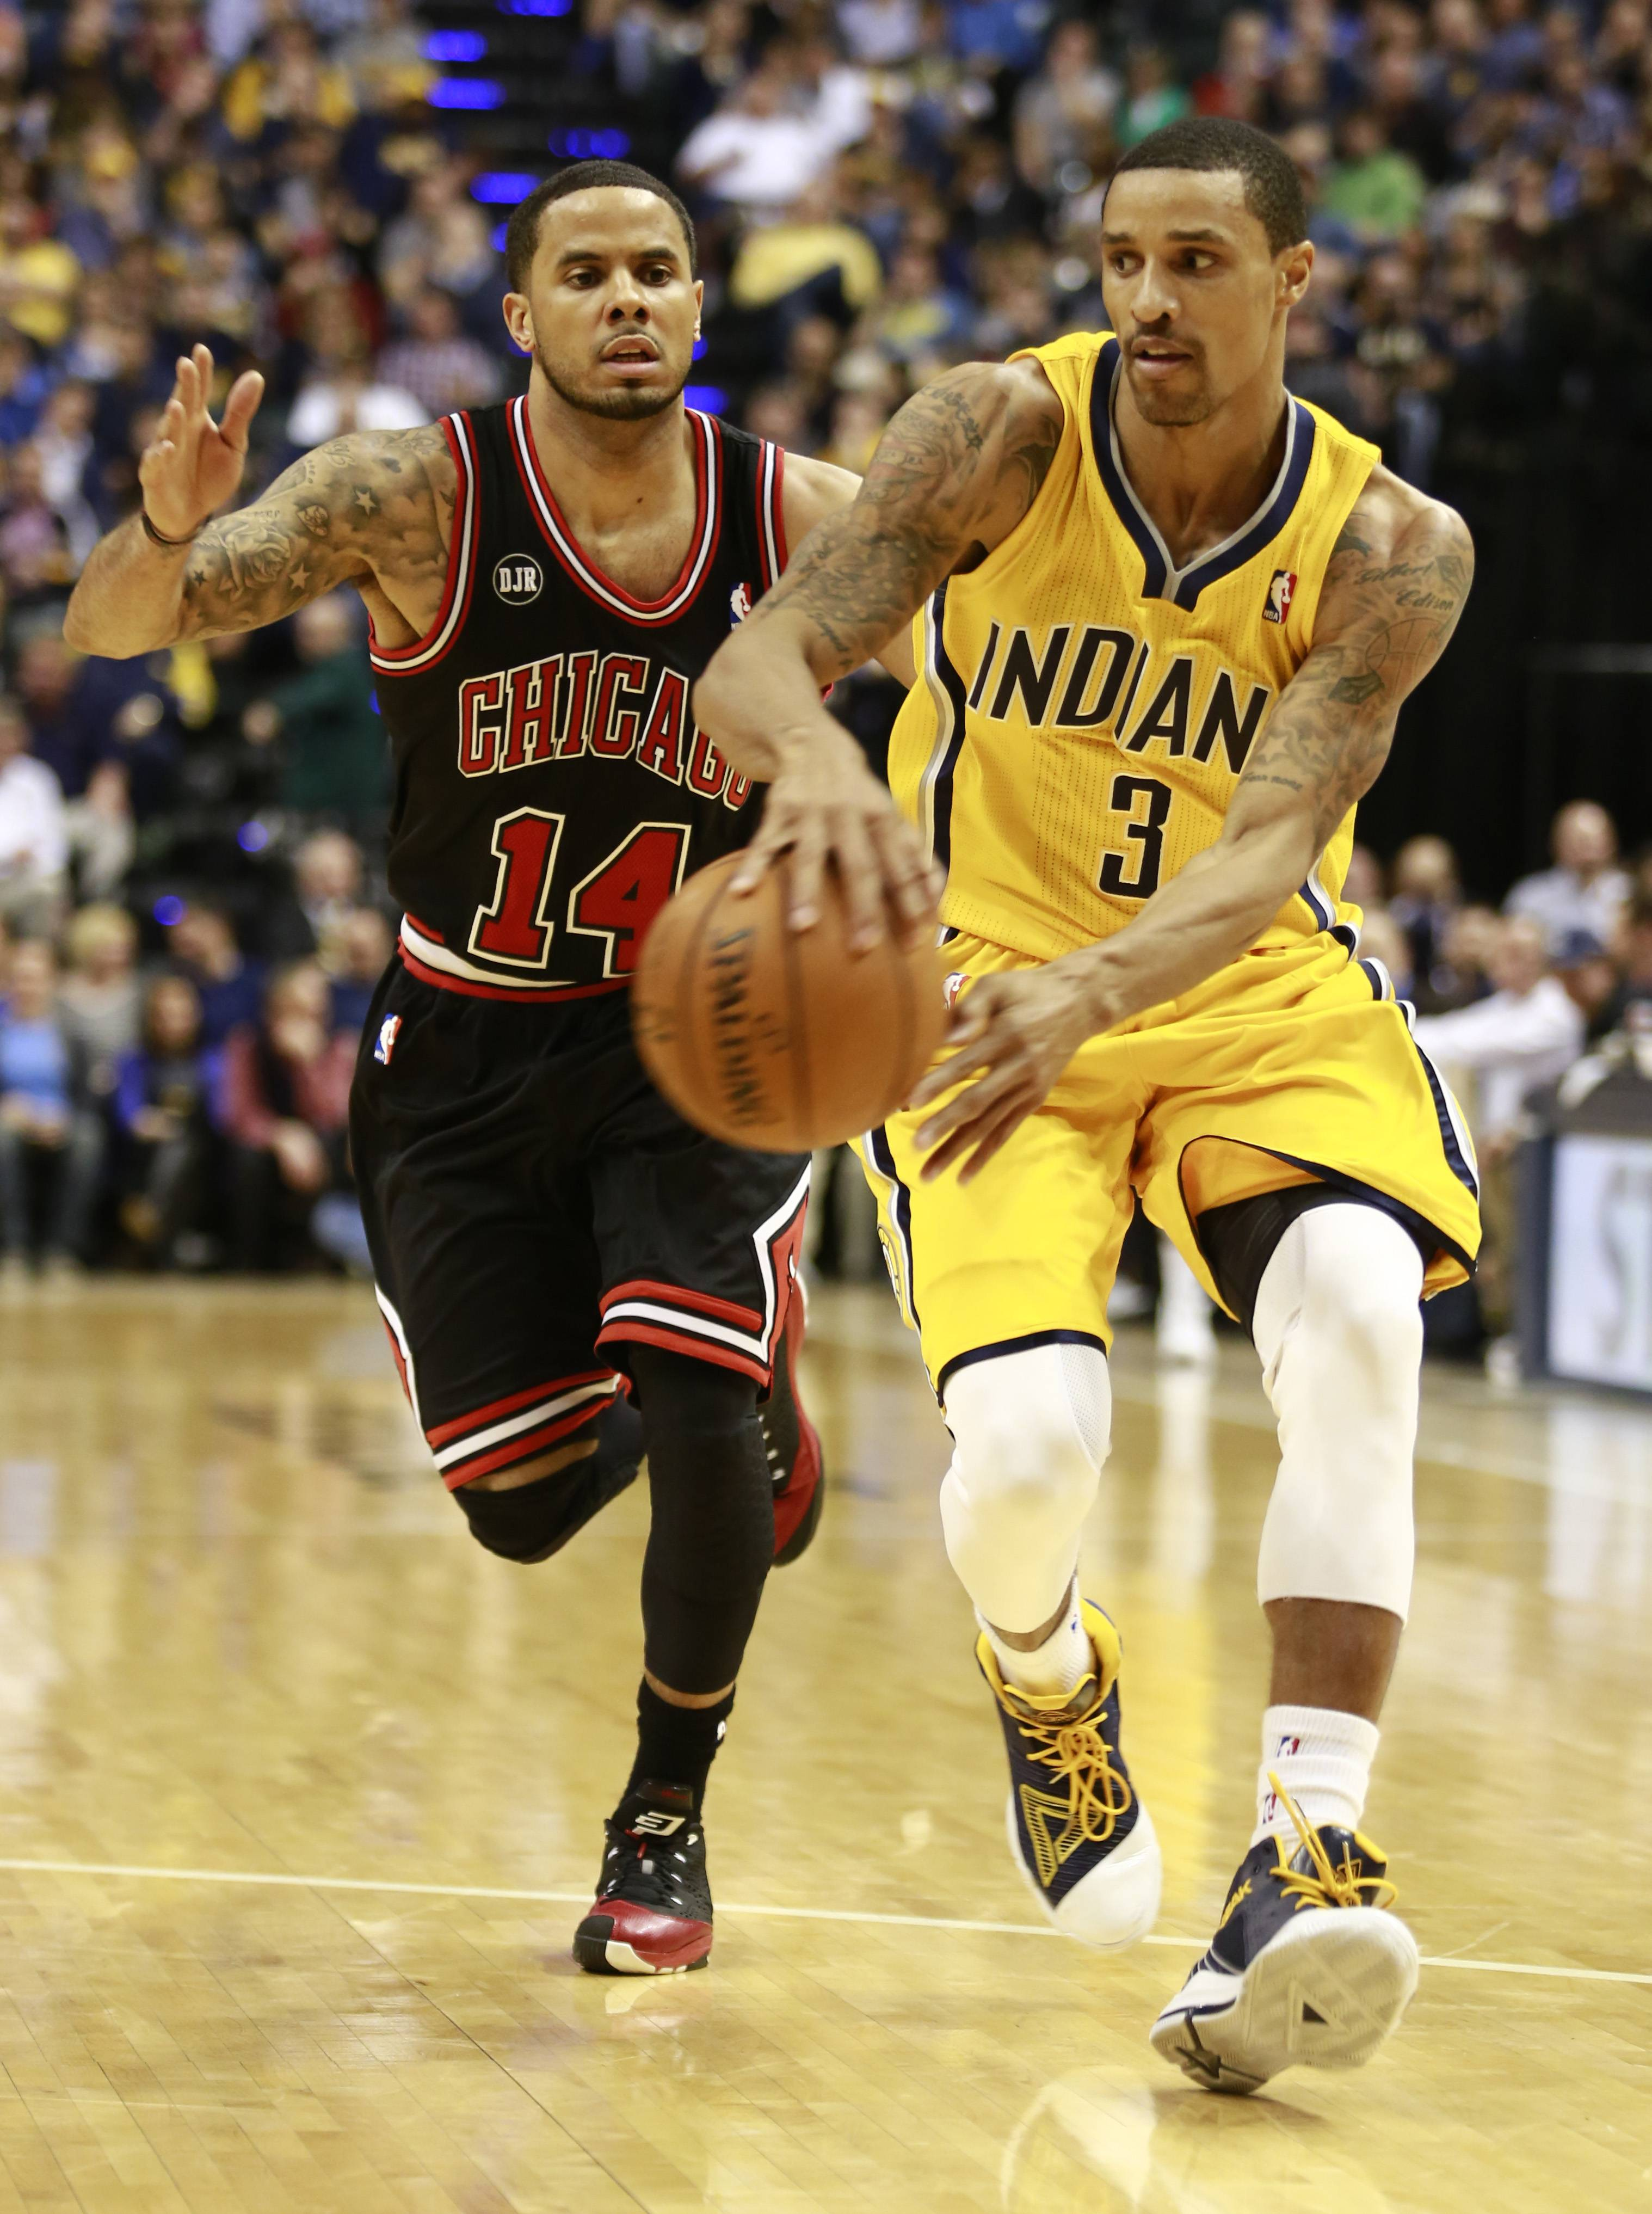 Indiana Pacers guard George Hill (3) passes the basketball while trailed by Chicago Bulls guard D.J. Augustin in the second half of an NBA basketball game in Indianapolis, Friday, March 21, 2014. The Pacers won 91-79.